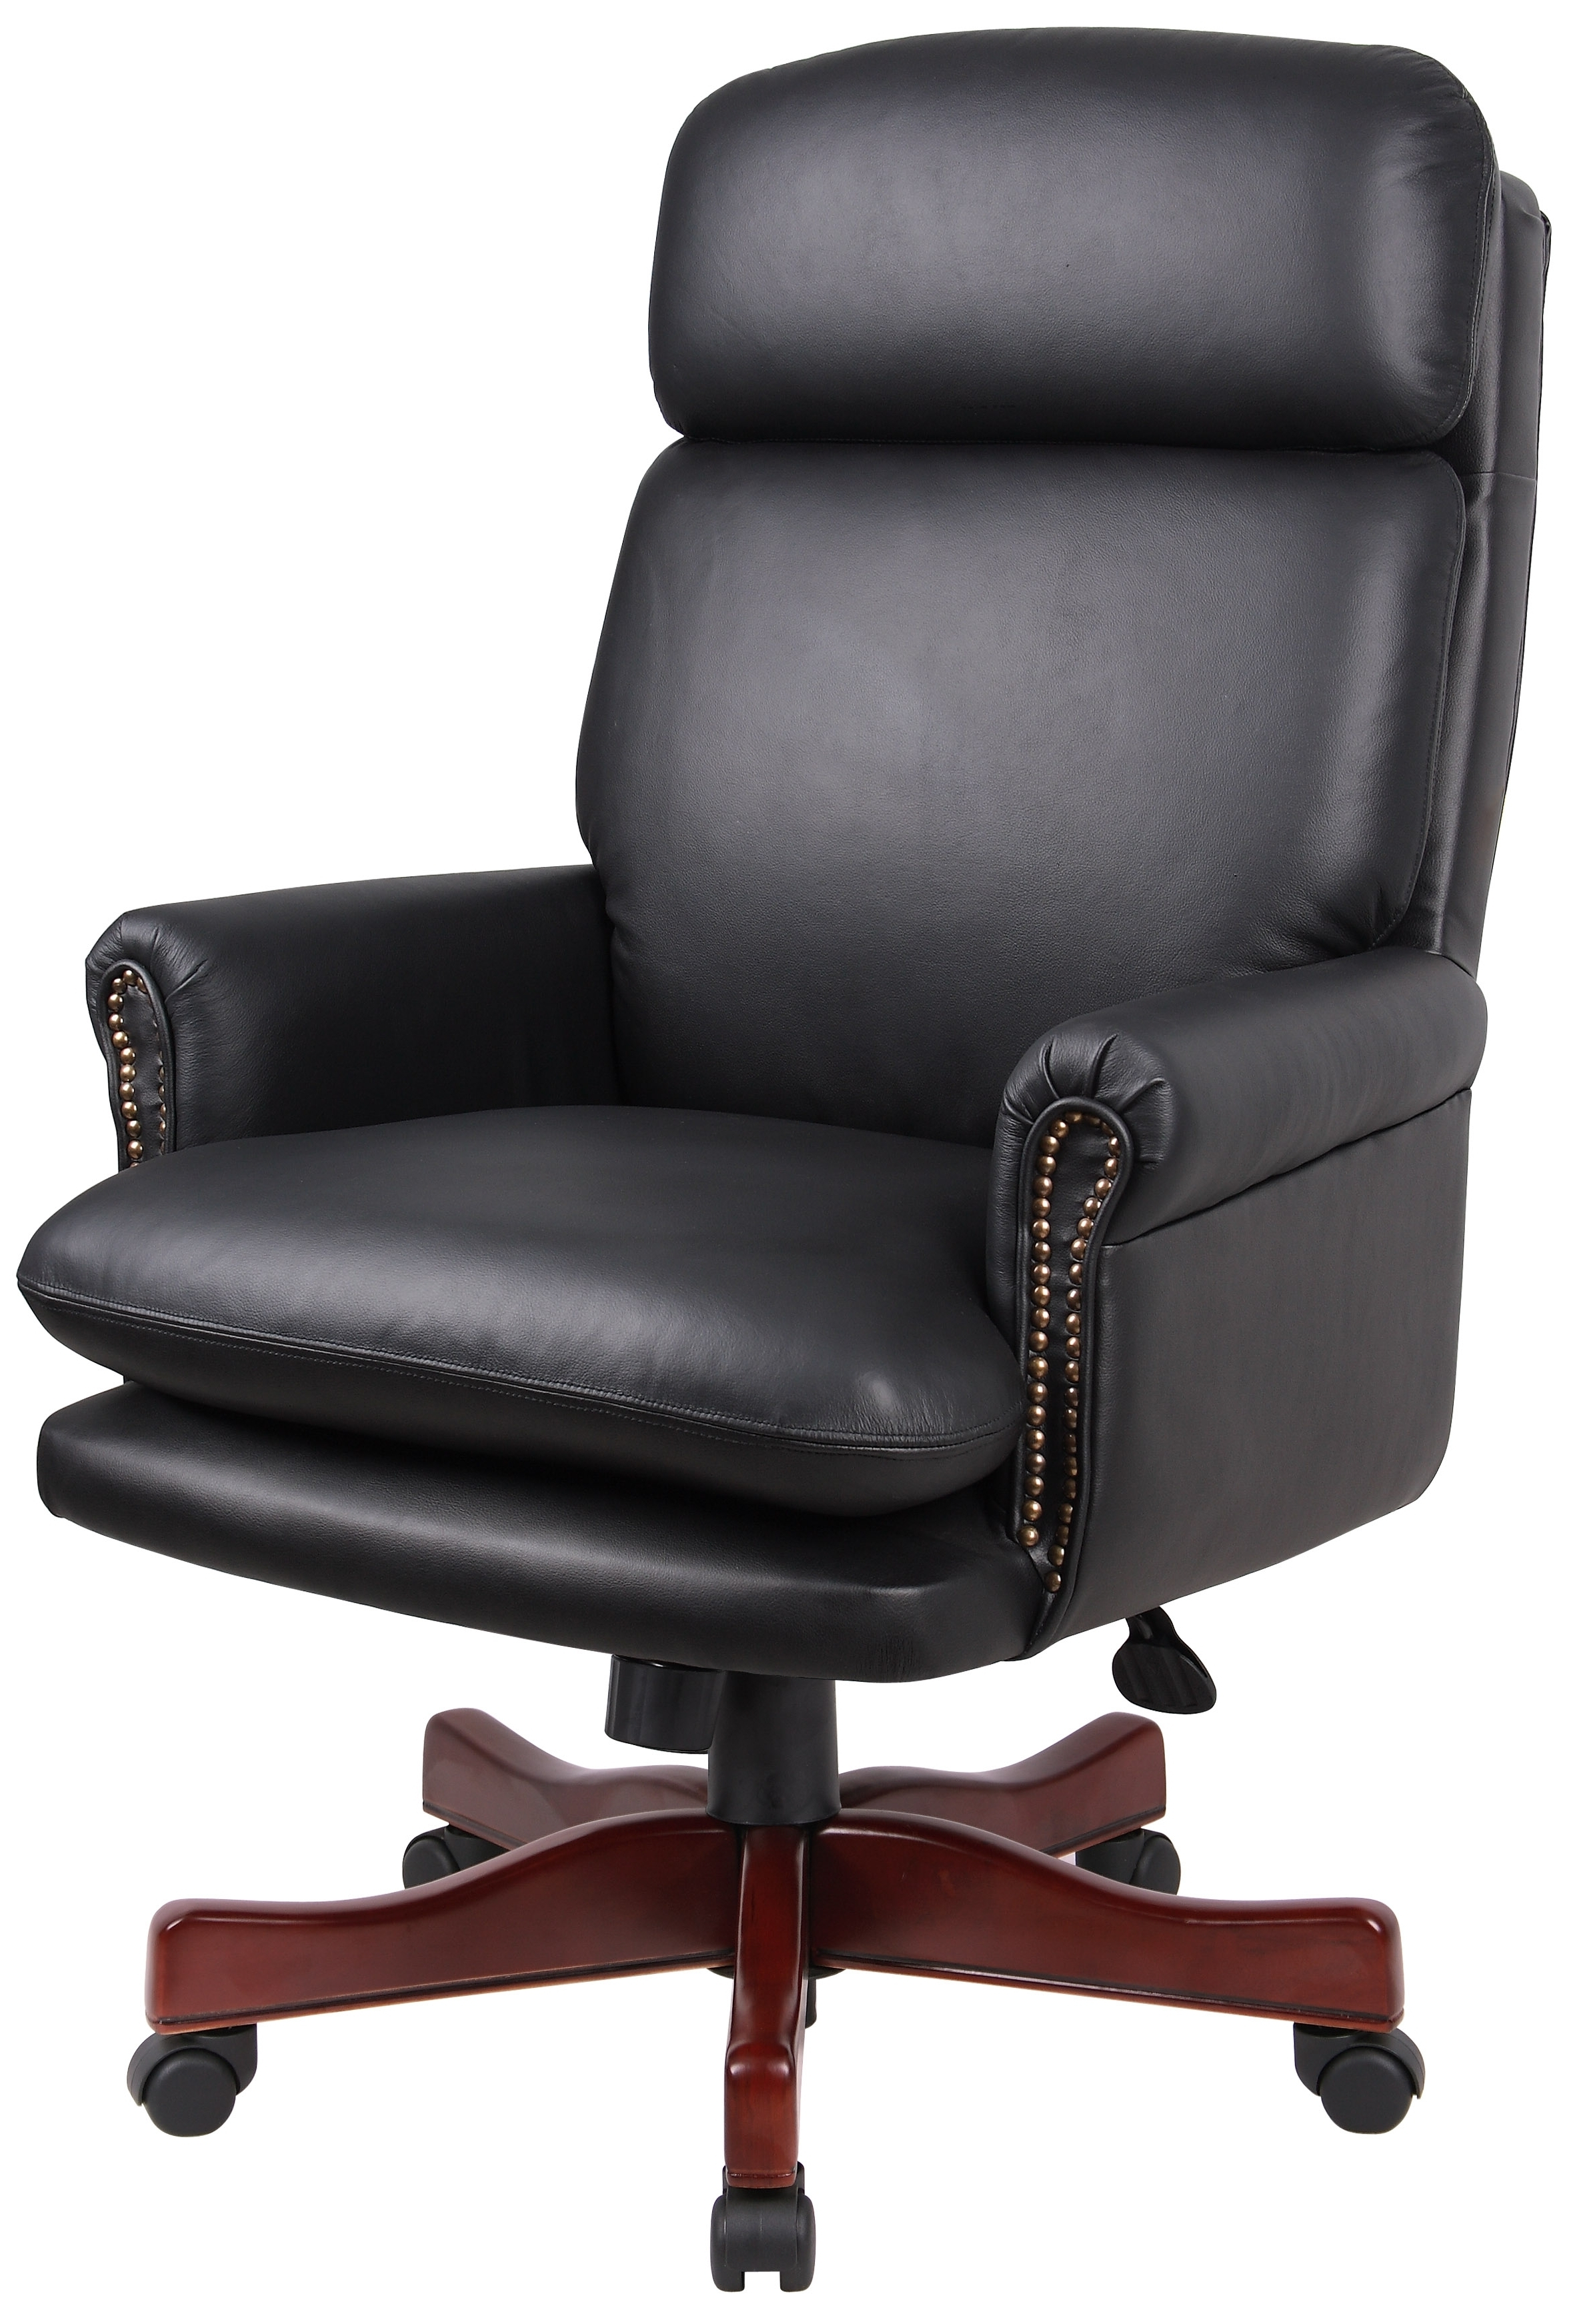 Boss Leather Executive Chair B850 Bk With Most Popular Nailhead Executive Office Chairs (View 1 of 20)